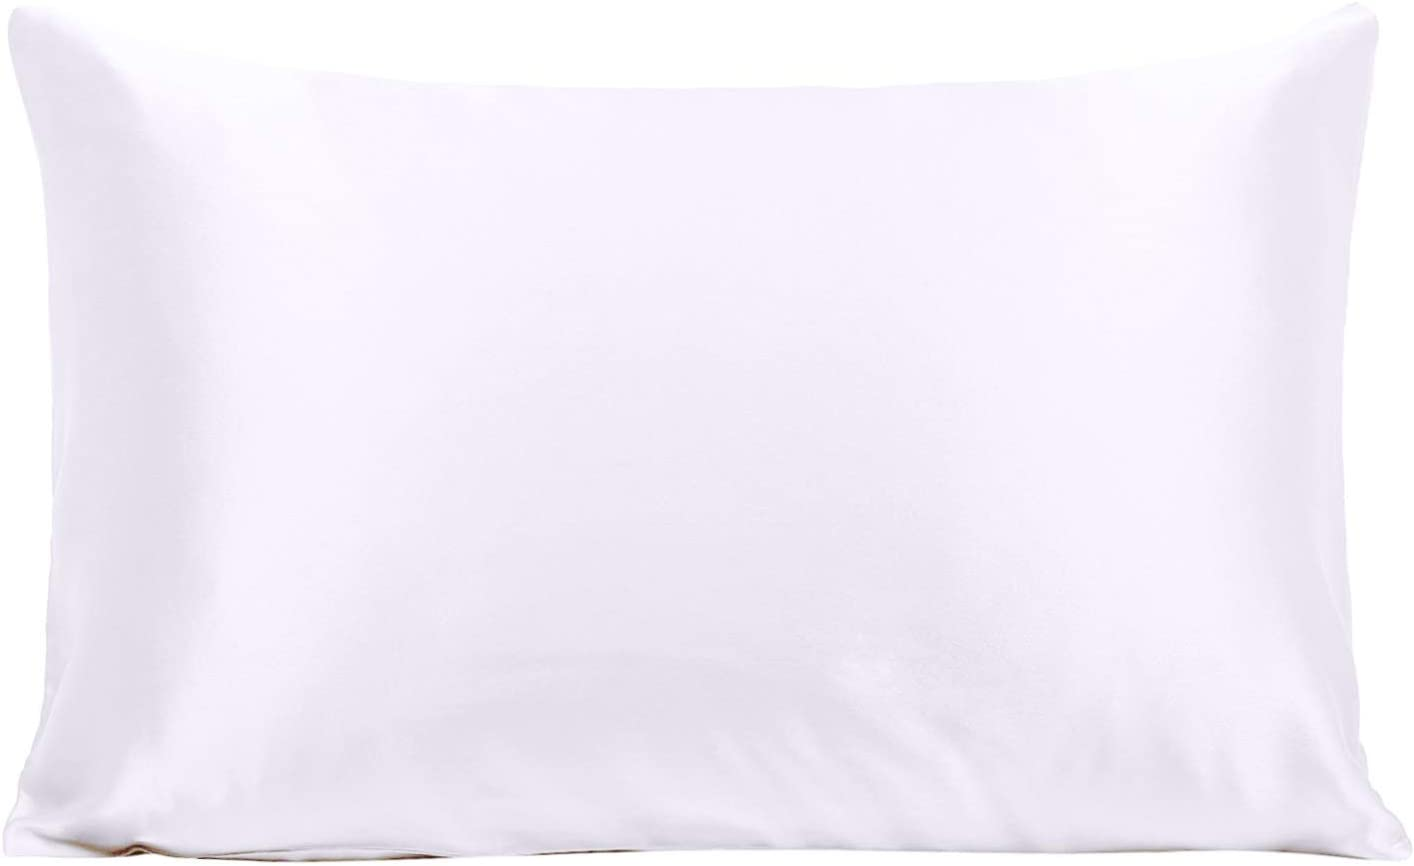 Ravmix 100% Pure Mulberry Silk Pillowcase Standard Size 21 Momme 600 Thread Count Hair Skin Hidden Zipper, Hypoallergenic Soft Breathable Both Sides Silk Pillow Case, 20×26inch, White